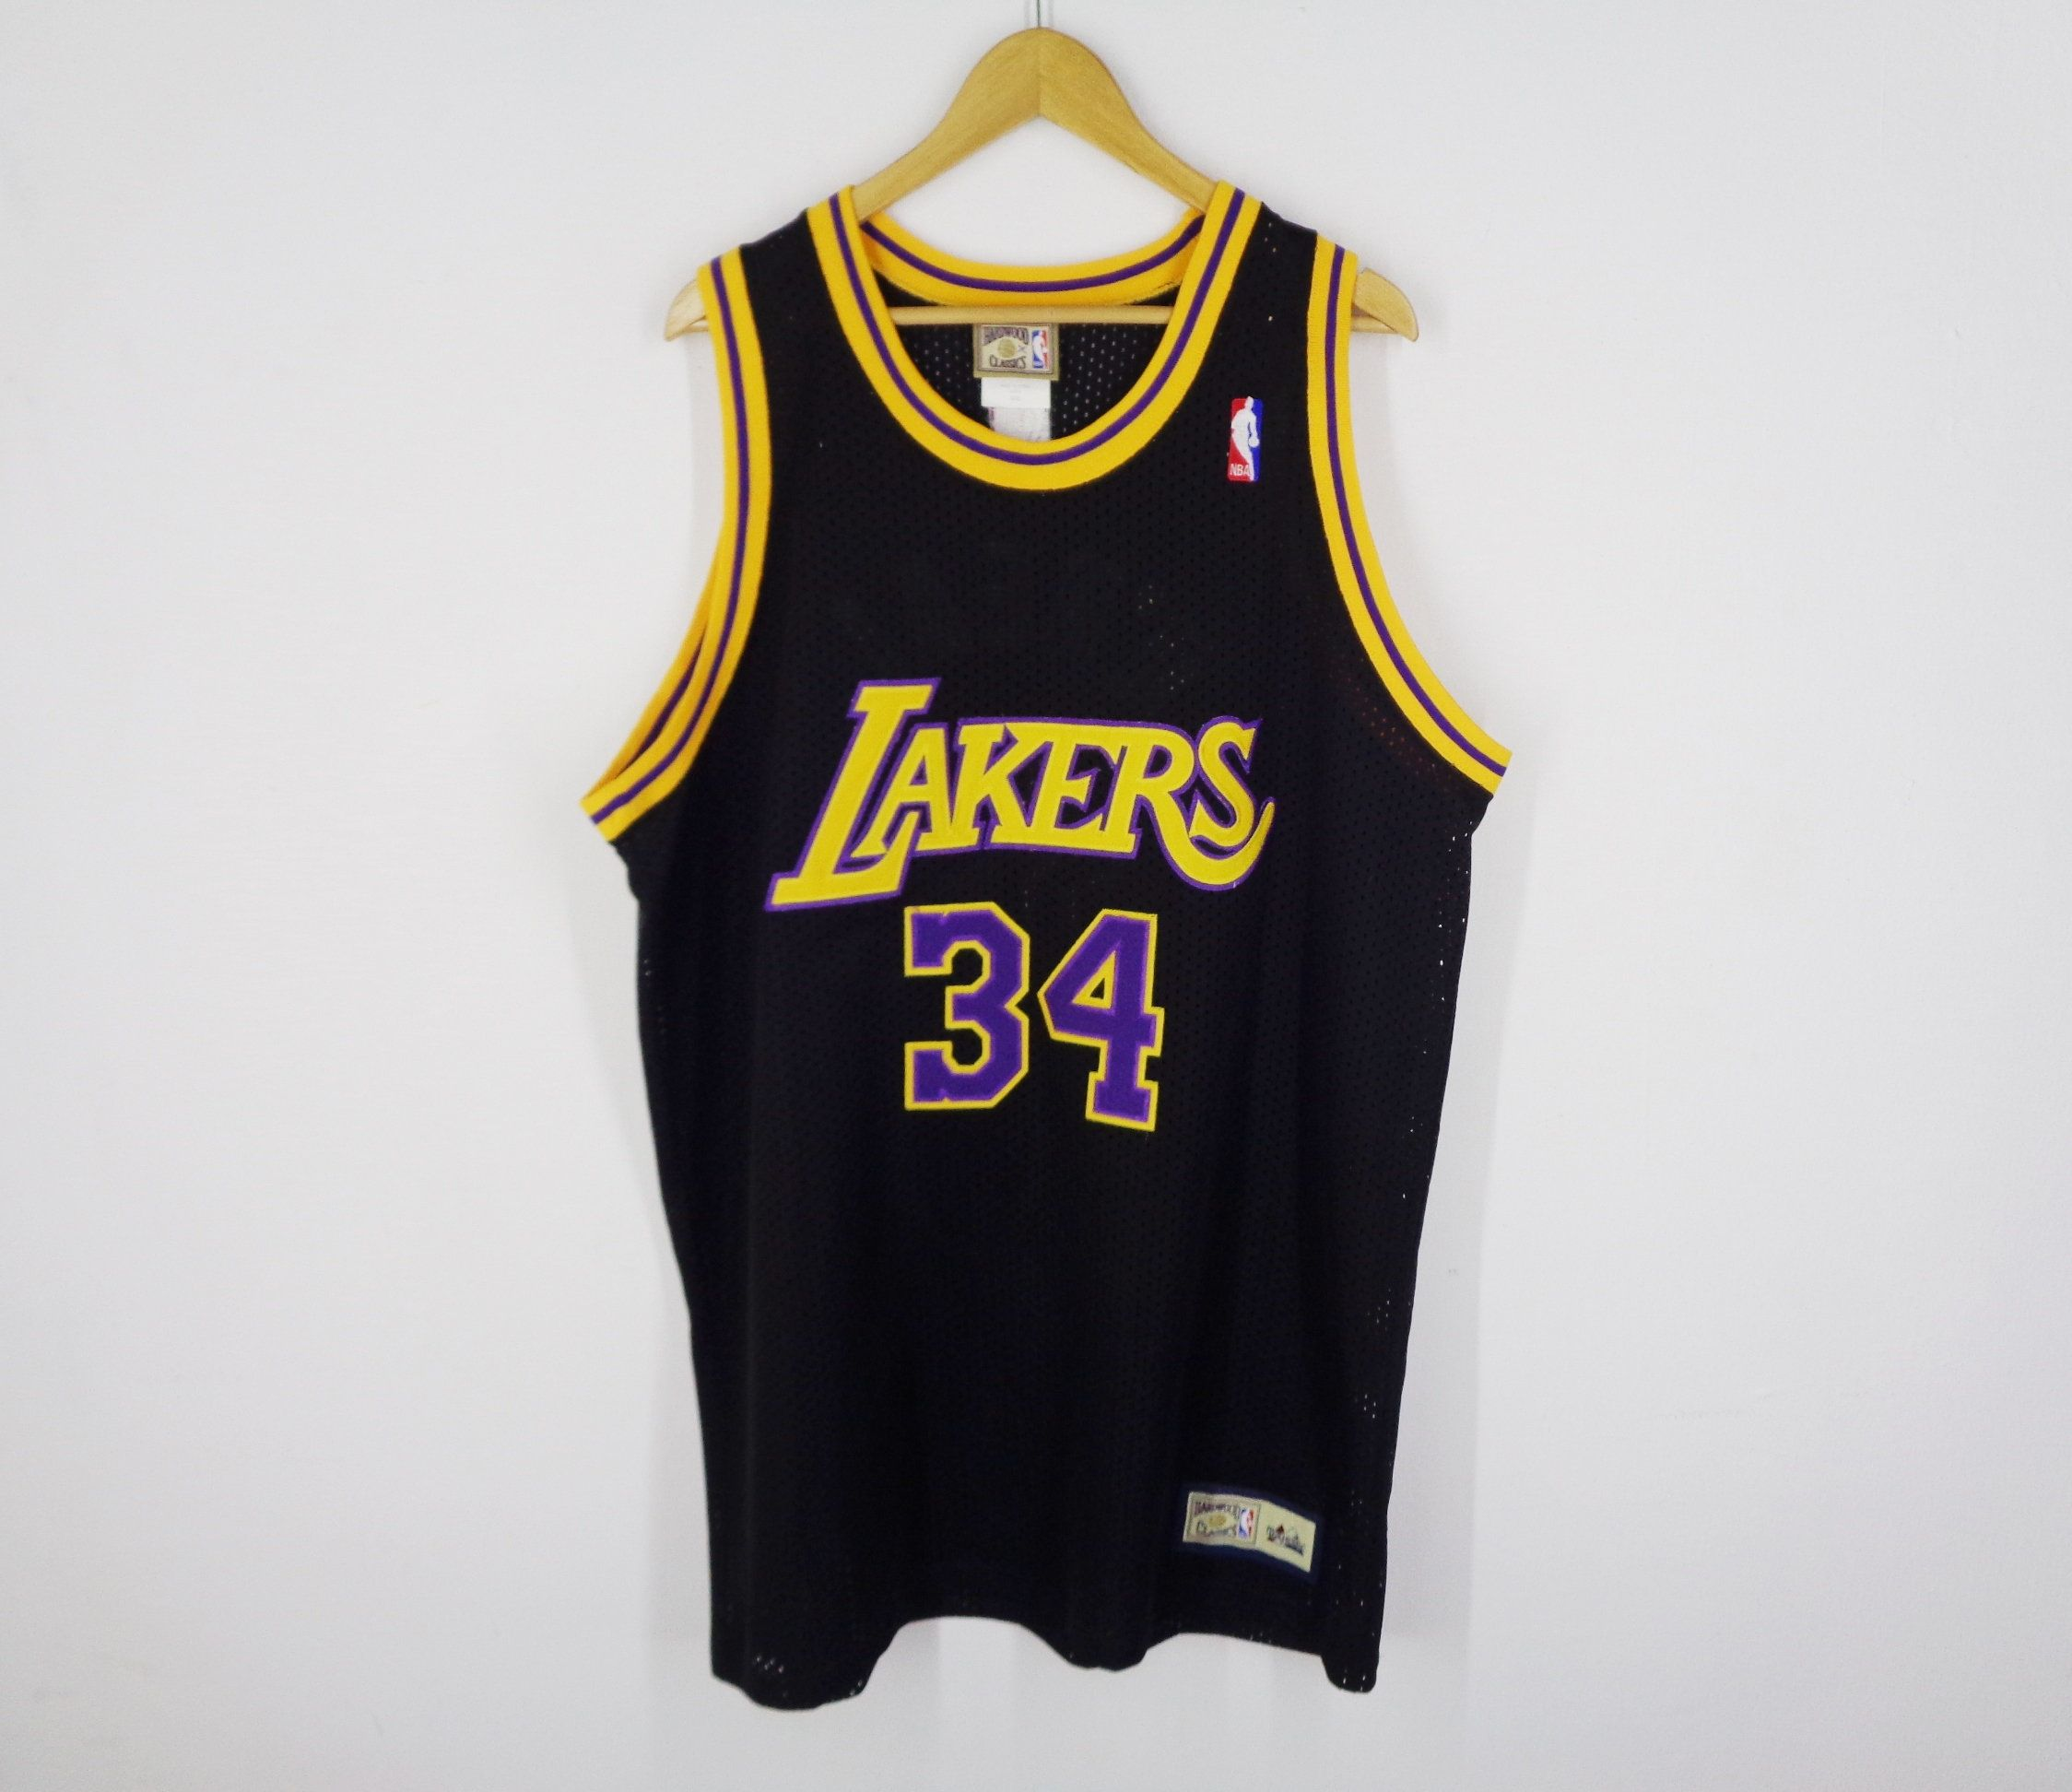 La Lakers Jersey Los Angeles Lakers Shaquille O Neal 34 Los Angeles Lakers Nba Basketball Mesh Jersey By Shaquille O Neal Los Angeles Lakers La Lakers Jersey